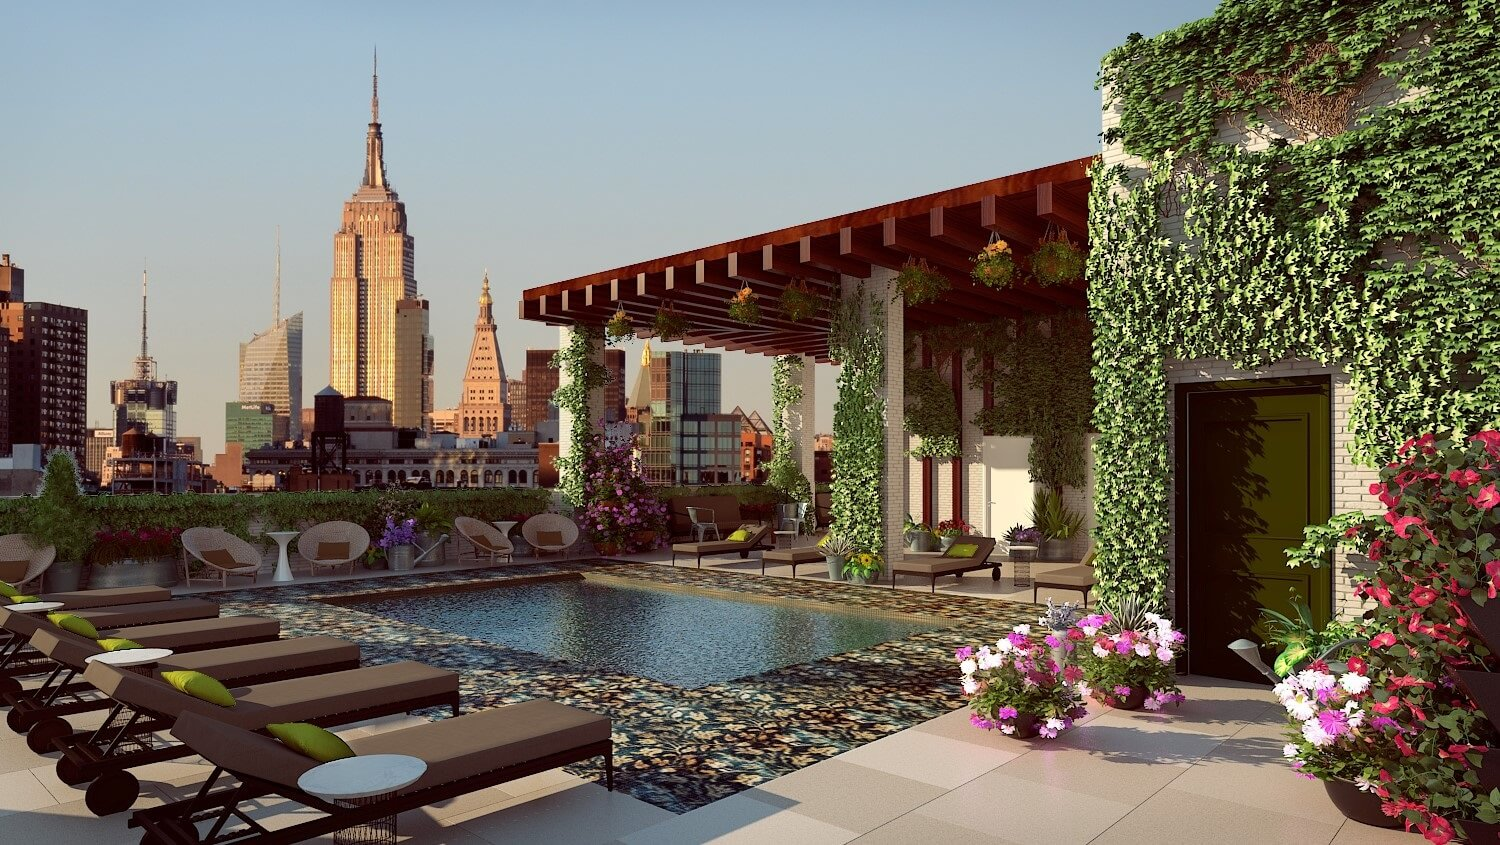 Renaissance New York Chelsea makes its mark on Manhattan this fall